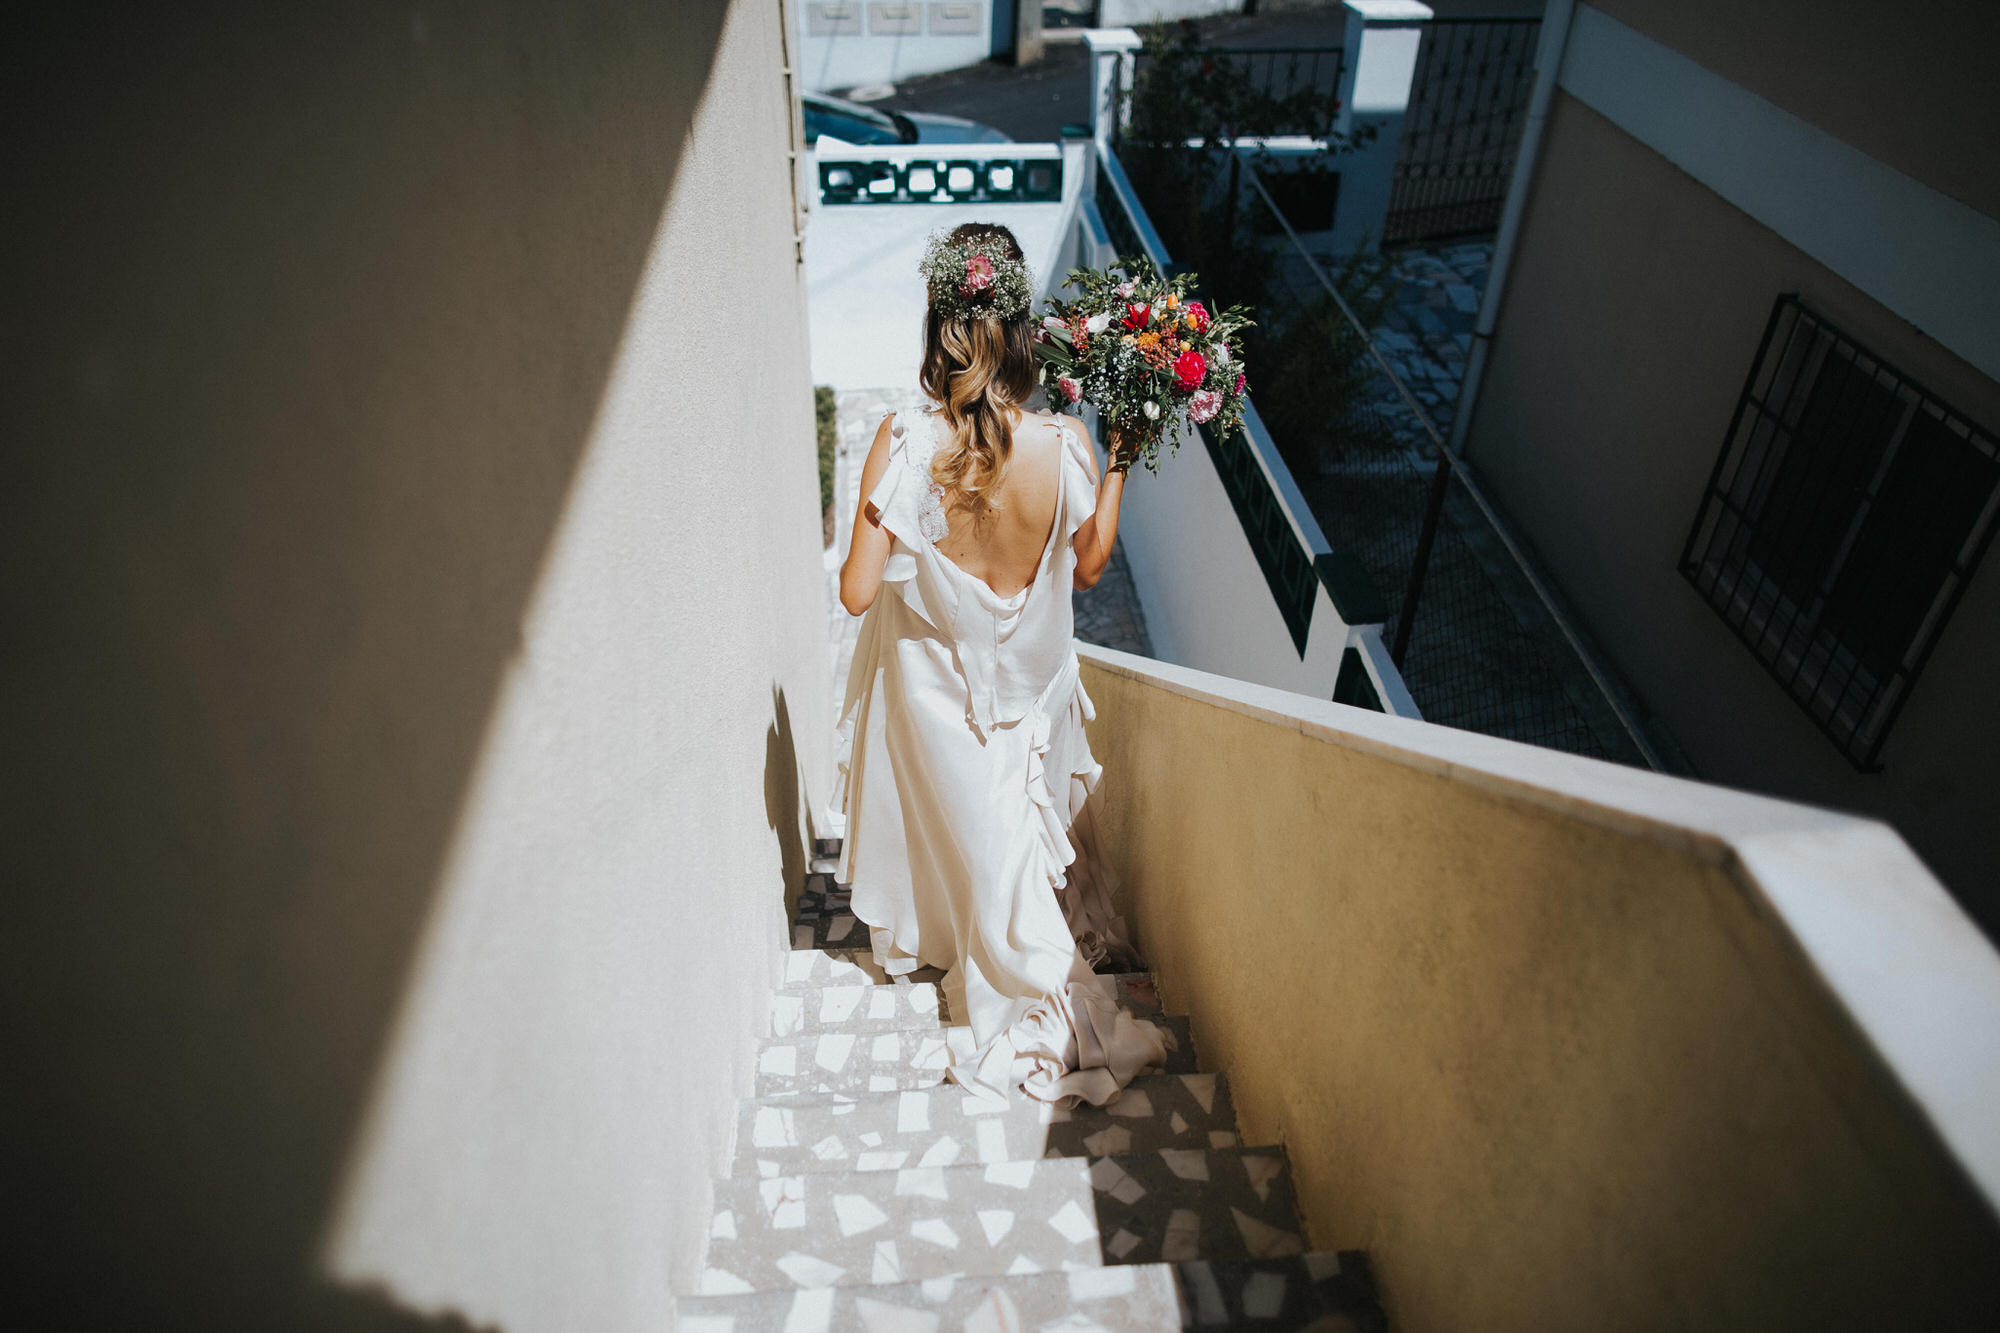 Filipe Santiago Fotografia-fotografo-malveira-lisboa-cascais-mafra-melhores-reportagem-wedding-photography-portugal-lisbon-best-natural-casamentos-lifestyle-bride-ideias-rustic-boho-hair-mackup-damas-preparativos-preparations-bridemaids-dress-shoes-bouquet-back